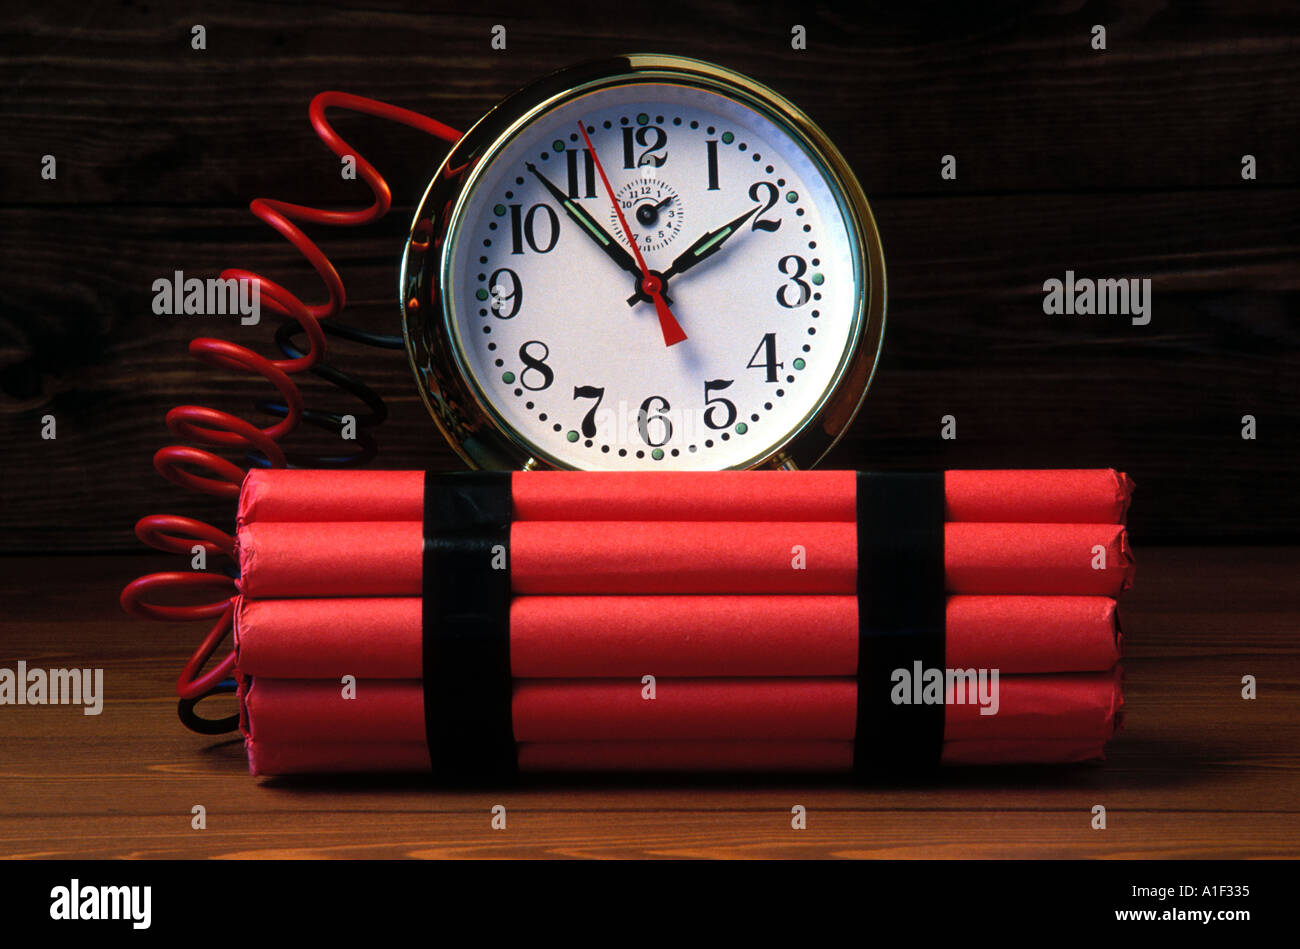 Time bomb simulation - Stock Image